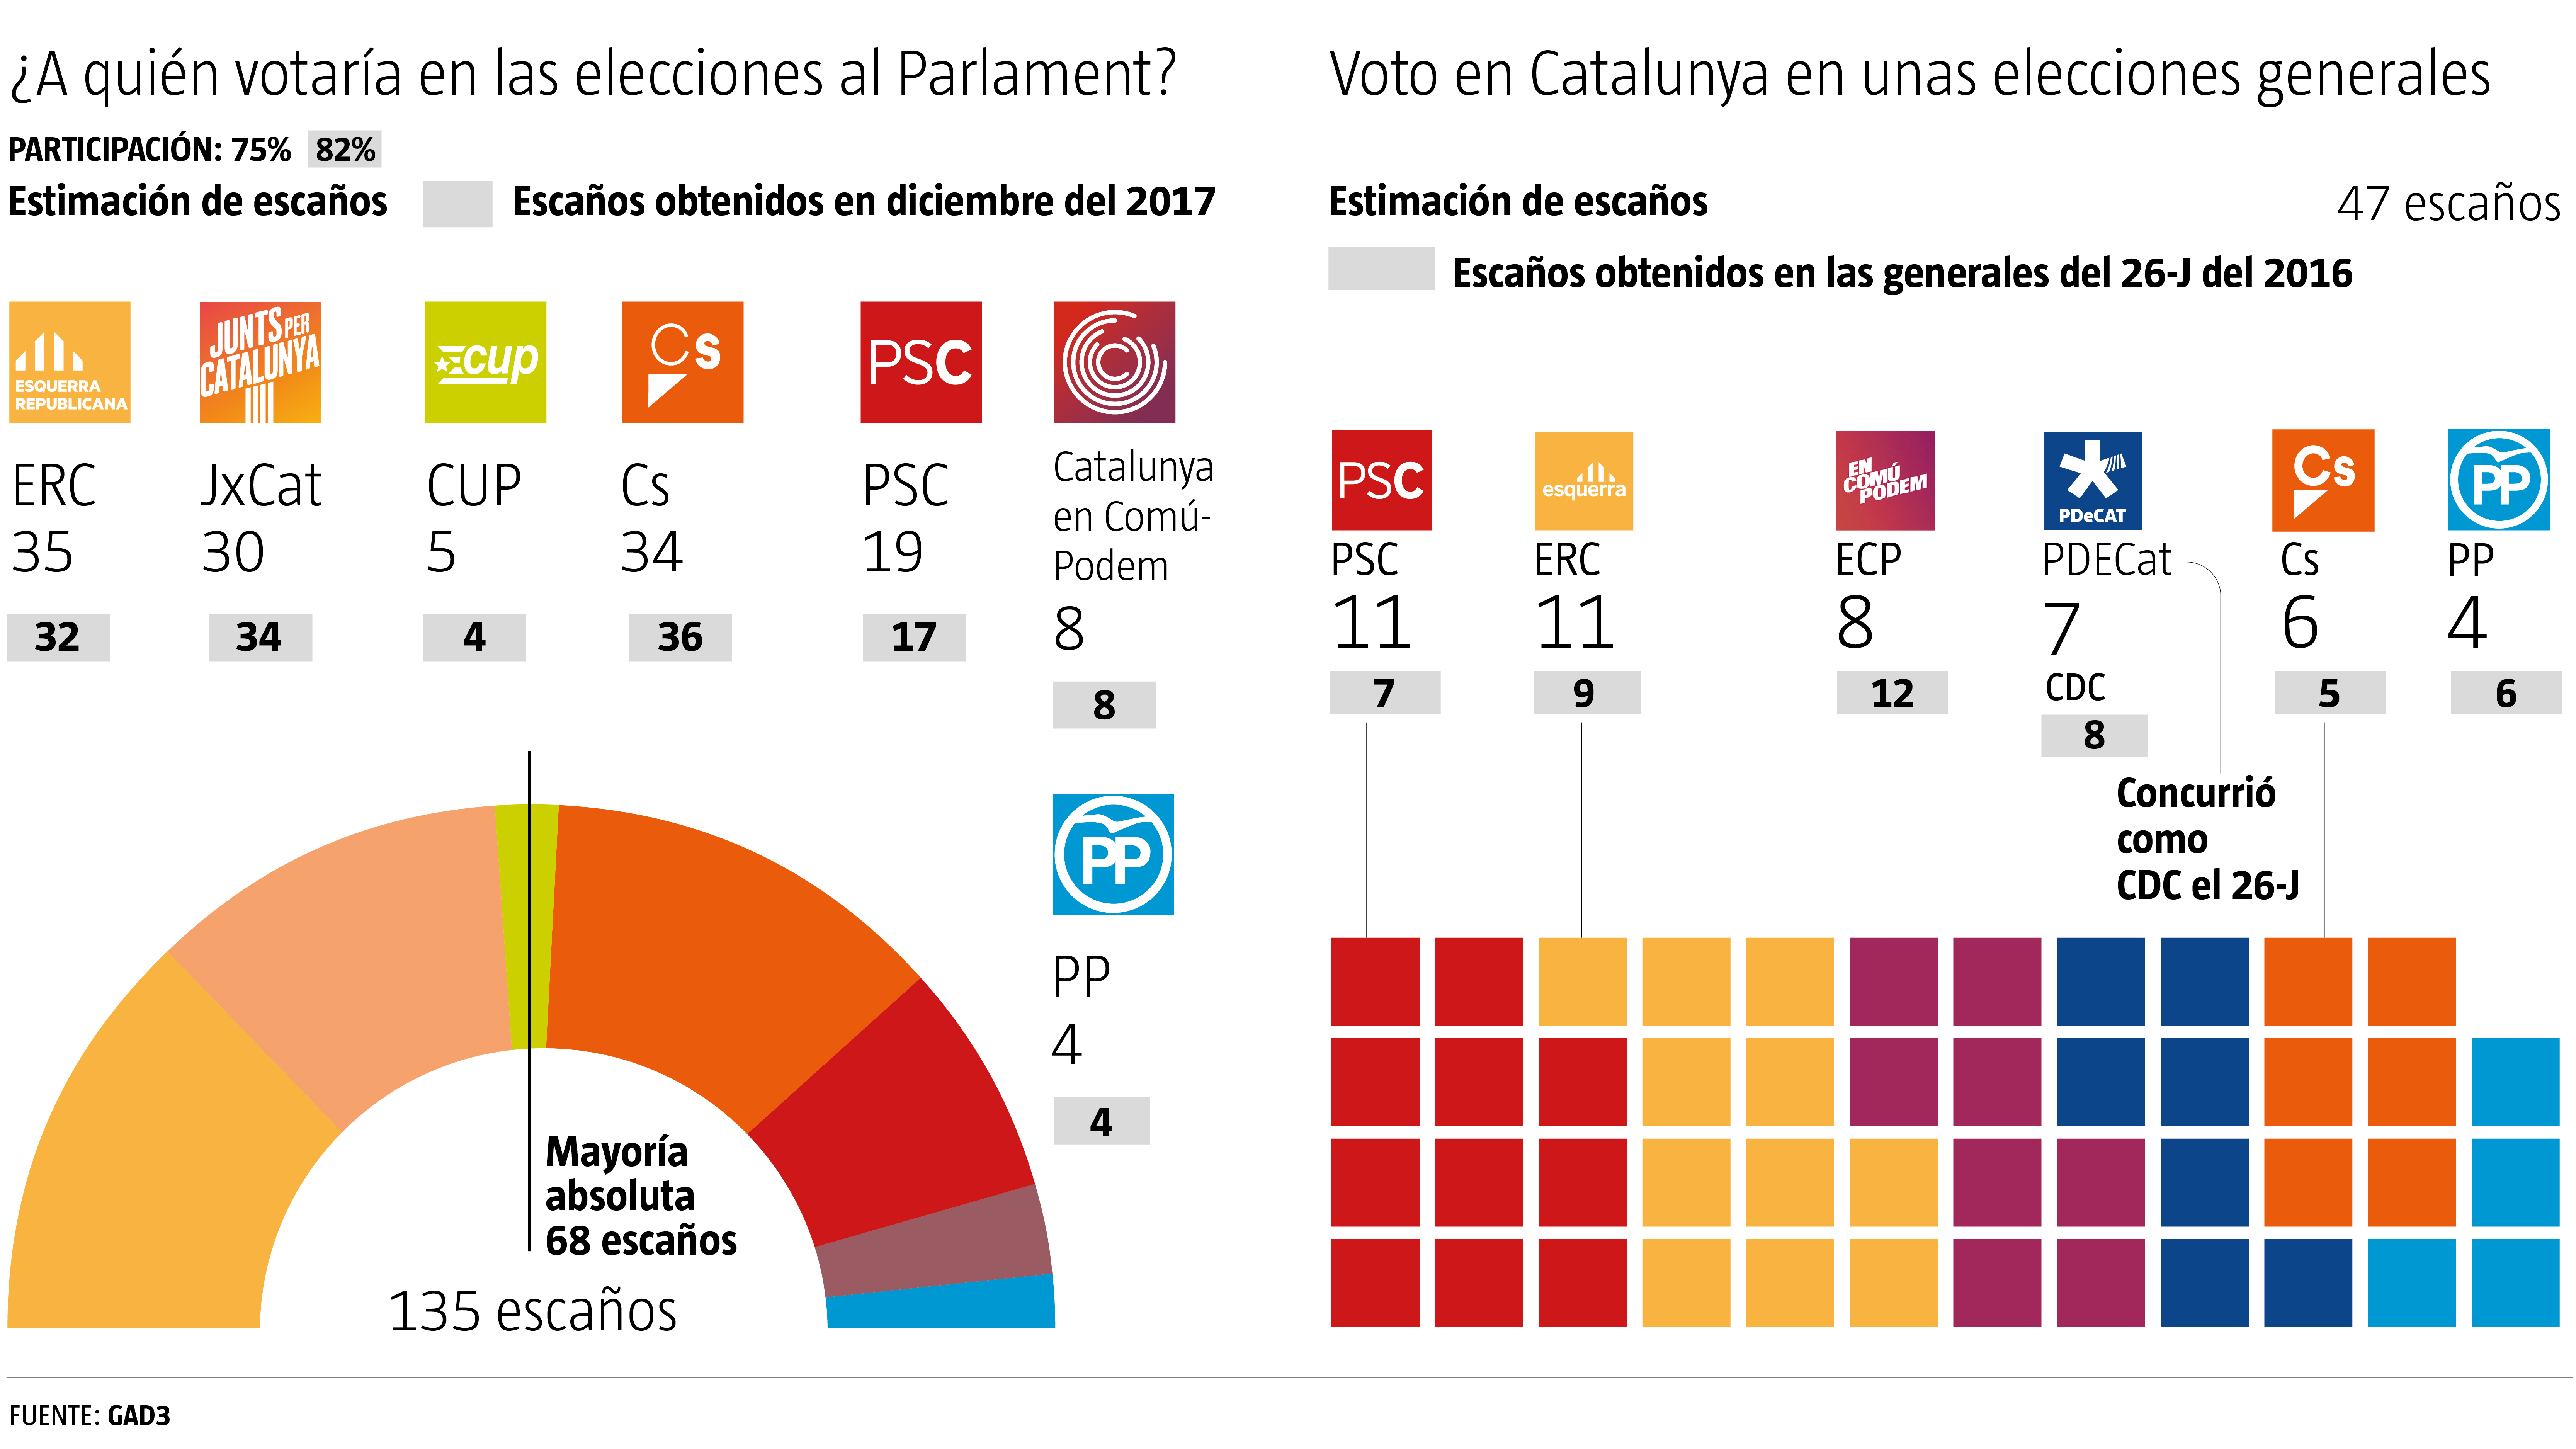 GAD 3 poll, June 23 (Catalonia and Catalan seats in the Spanish Congress)